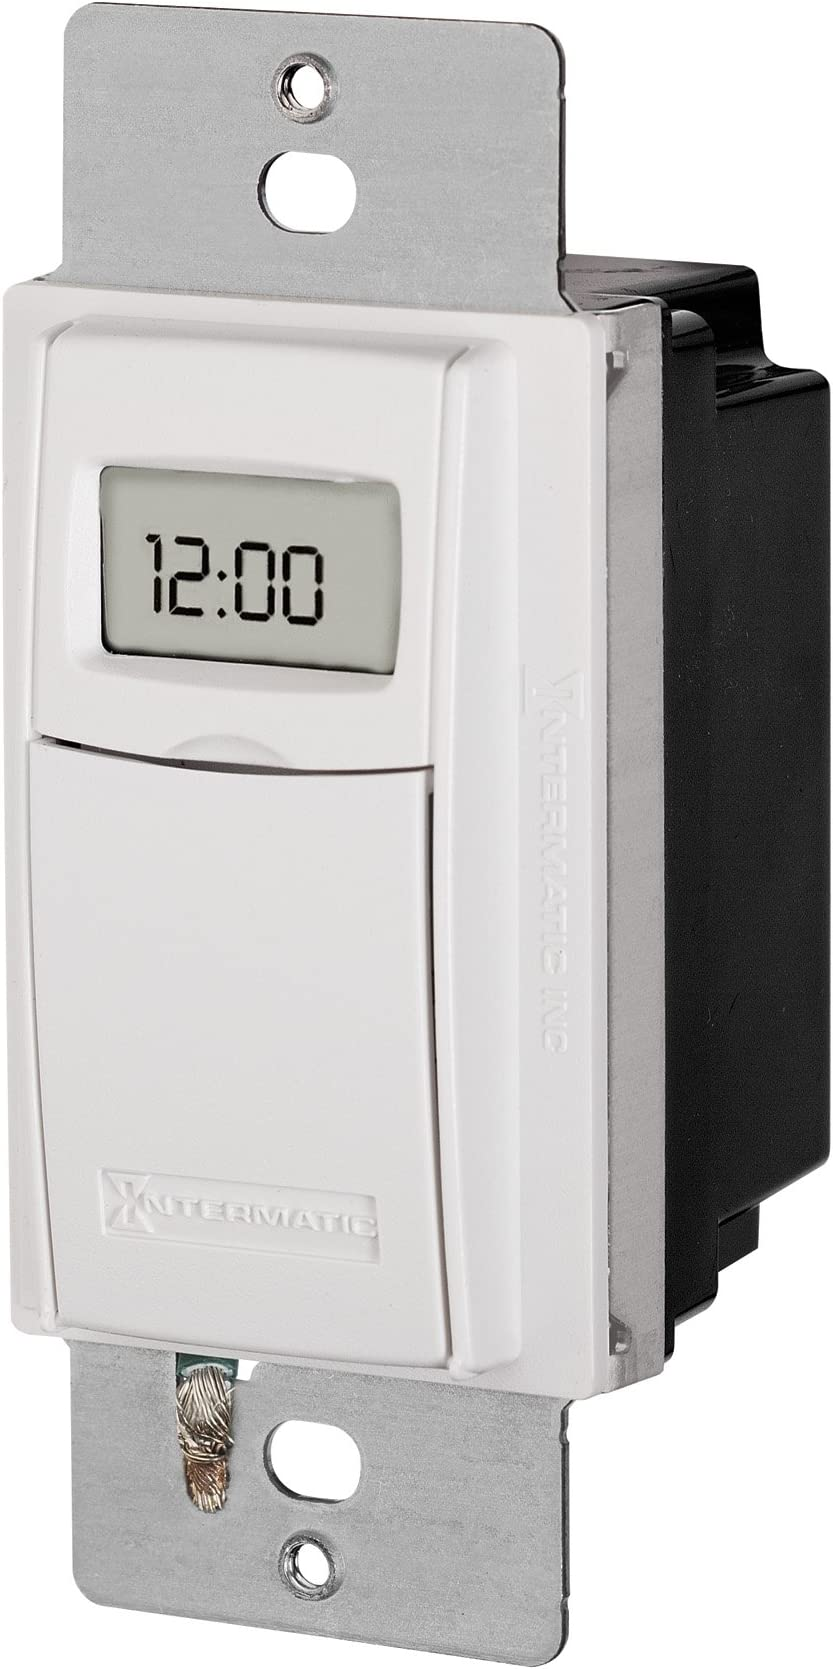 Intermatic ST01 7 Day Programmable In Wall Digital Timer Switch for Lights and Appliances, Astronomic, Self Adjusting, Heavy Duty,White